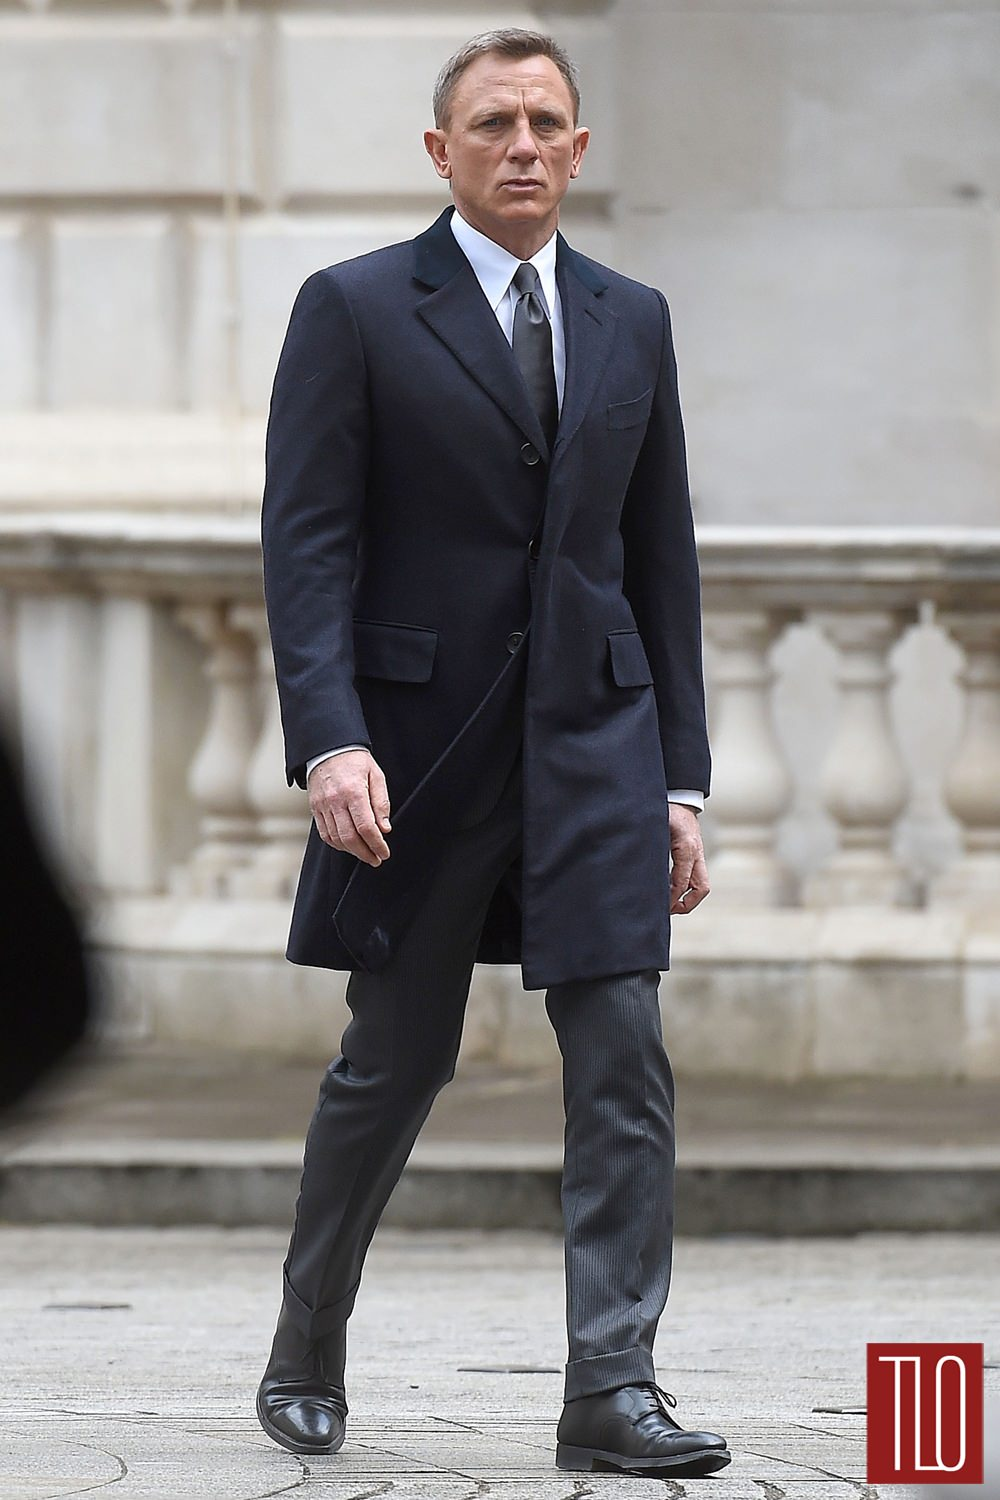 Daniel-Craig-Movie-Set-Spectre-Tom-Lorenzo-Site-TLO (1)